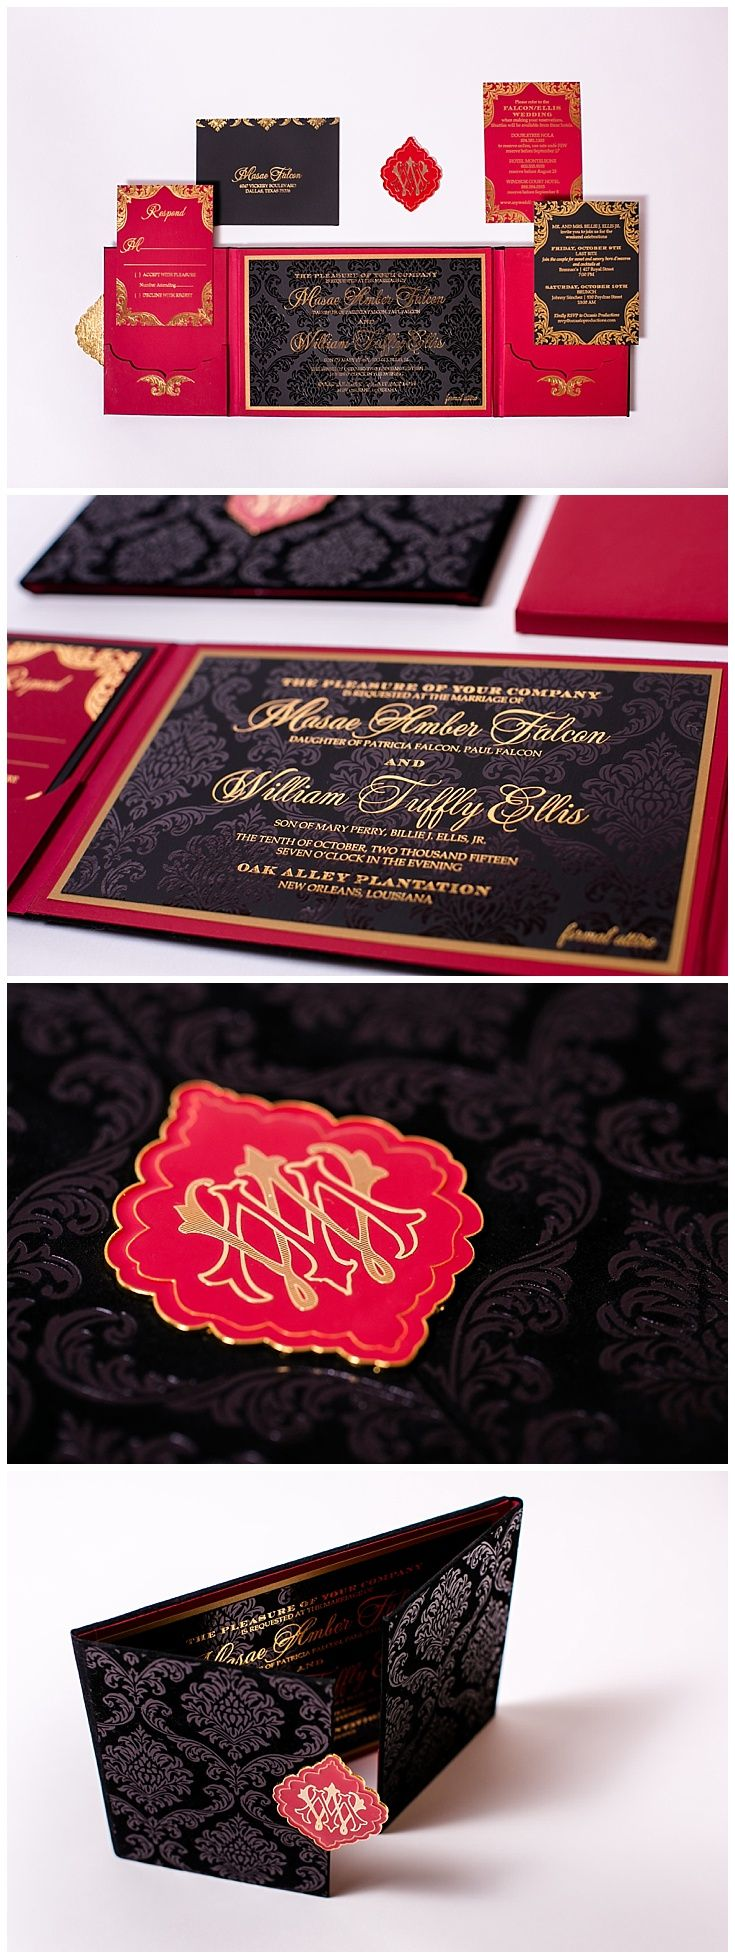 diamond wedding invitations%0A Velvet Wedding Invitations